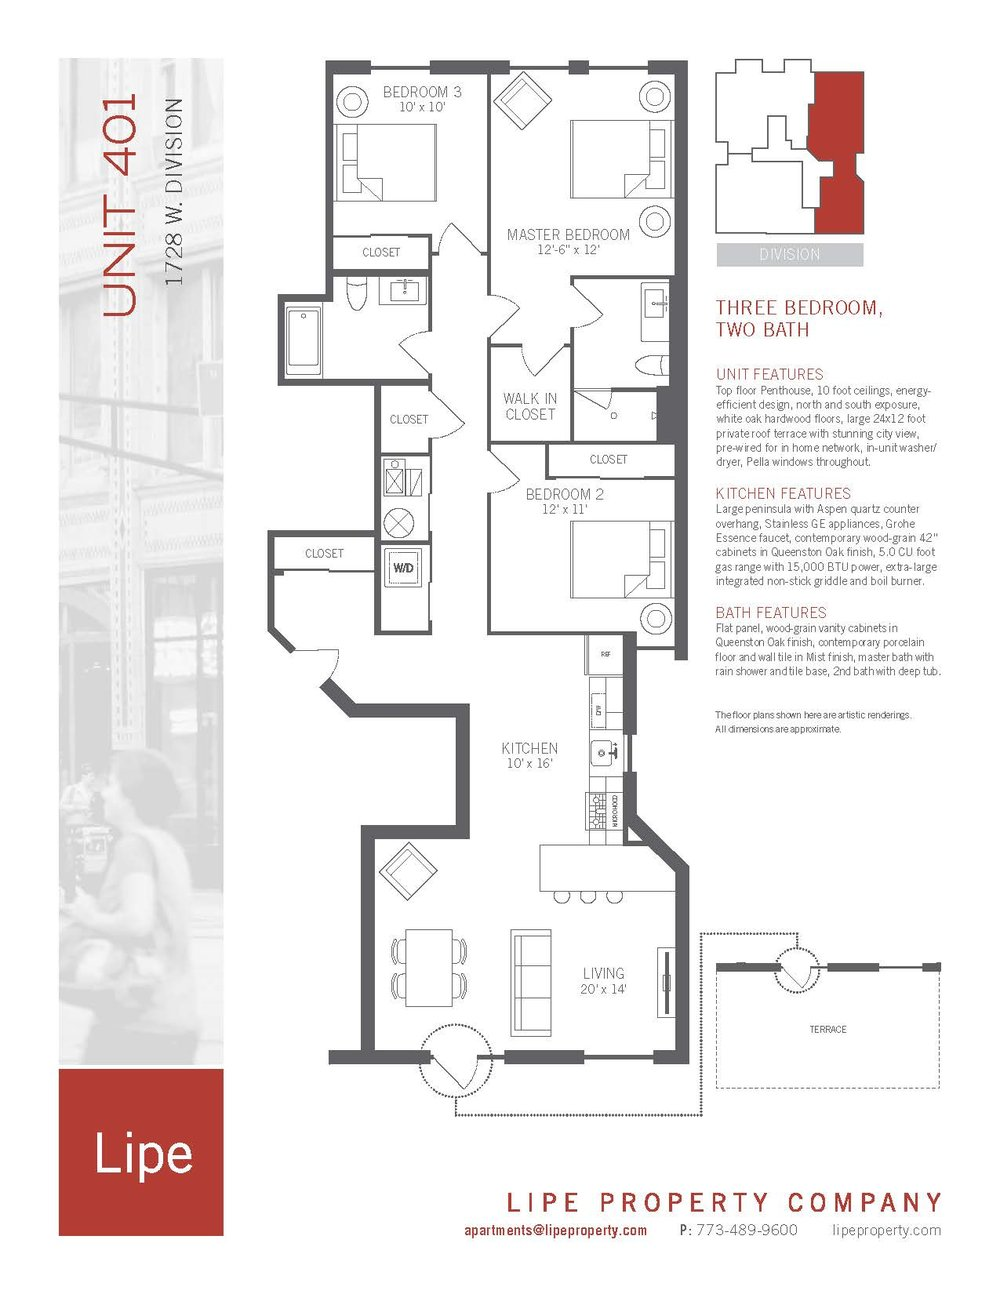 1728-West-Division-401-Floorplan-Chicago-apartment-for-rent.jpg